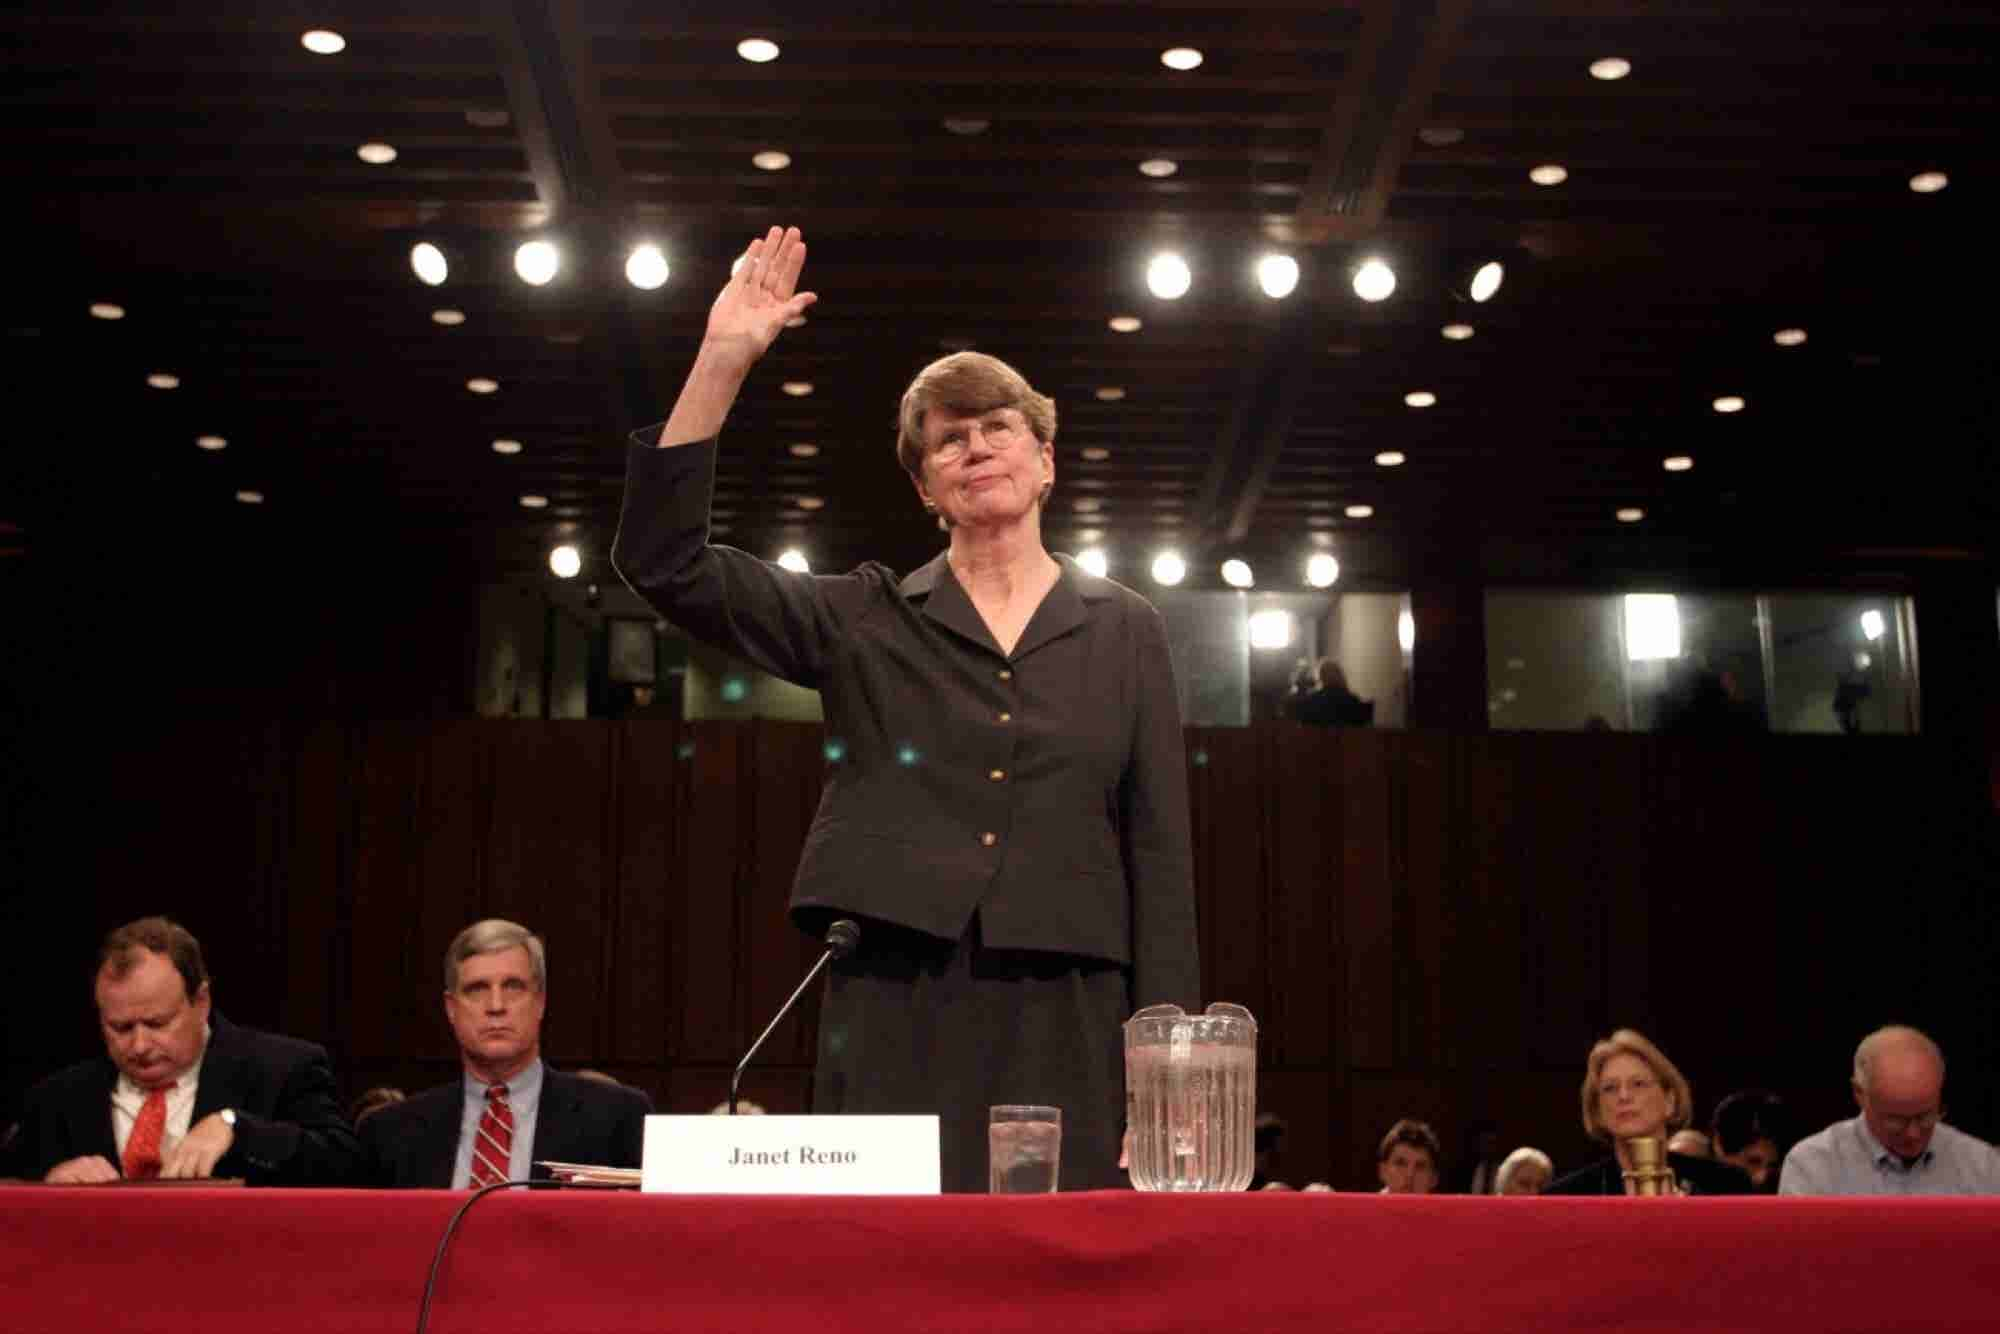 7 Inspiring Quotes About Hard Work From Janet Reno